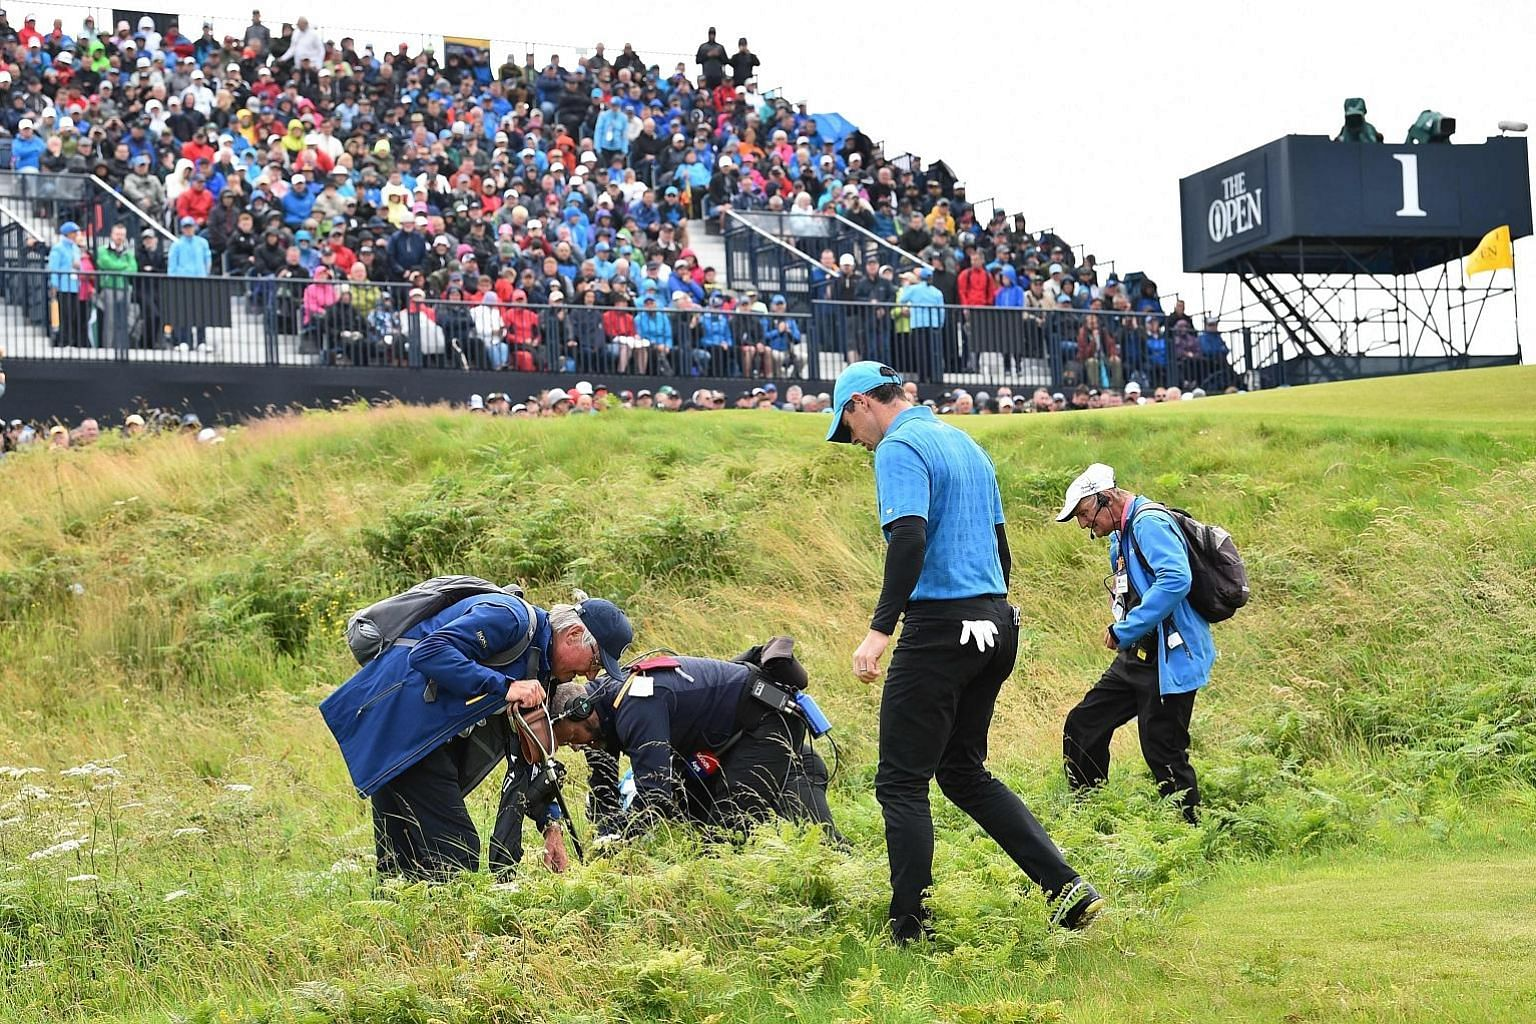 Rory McIlroy searching for his ball after he hooked his tee shot out of bounds at the first hole in the first round of the British Open at Royal Portrush Golf Club yesterday.